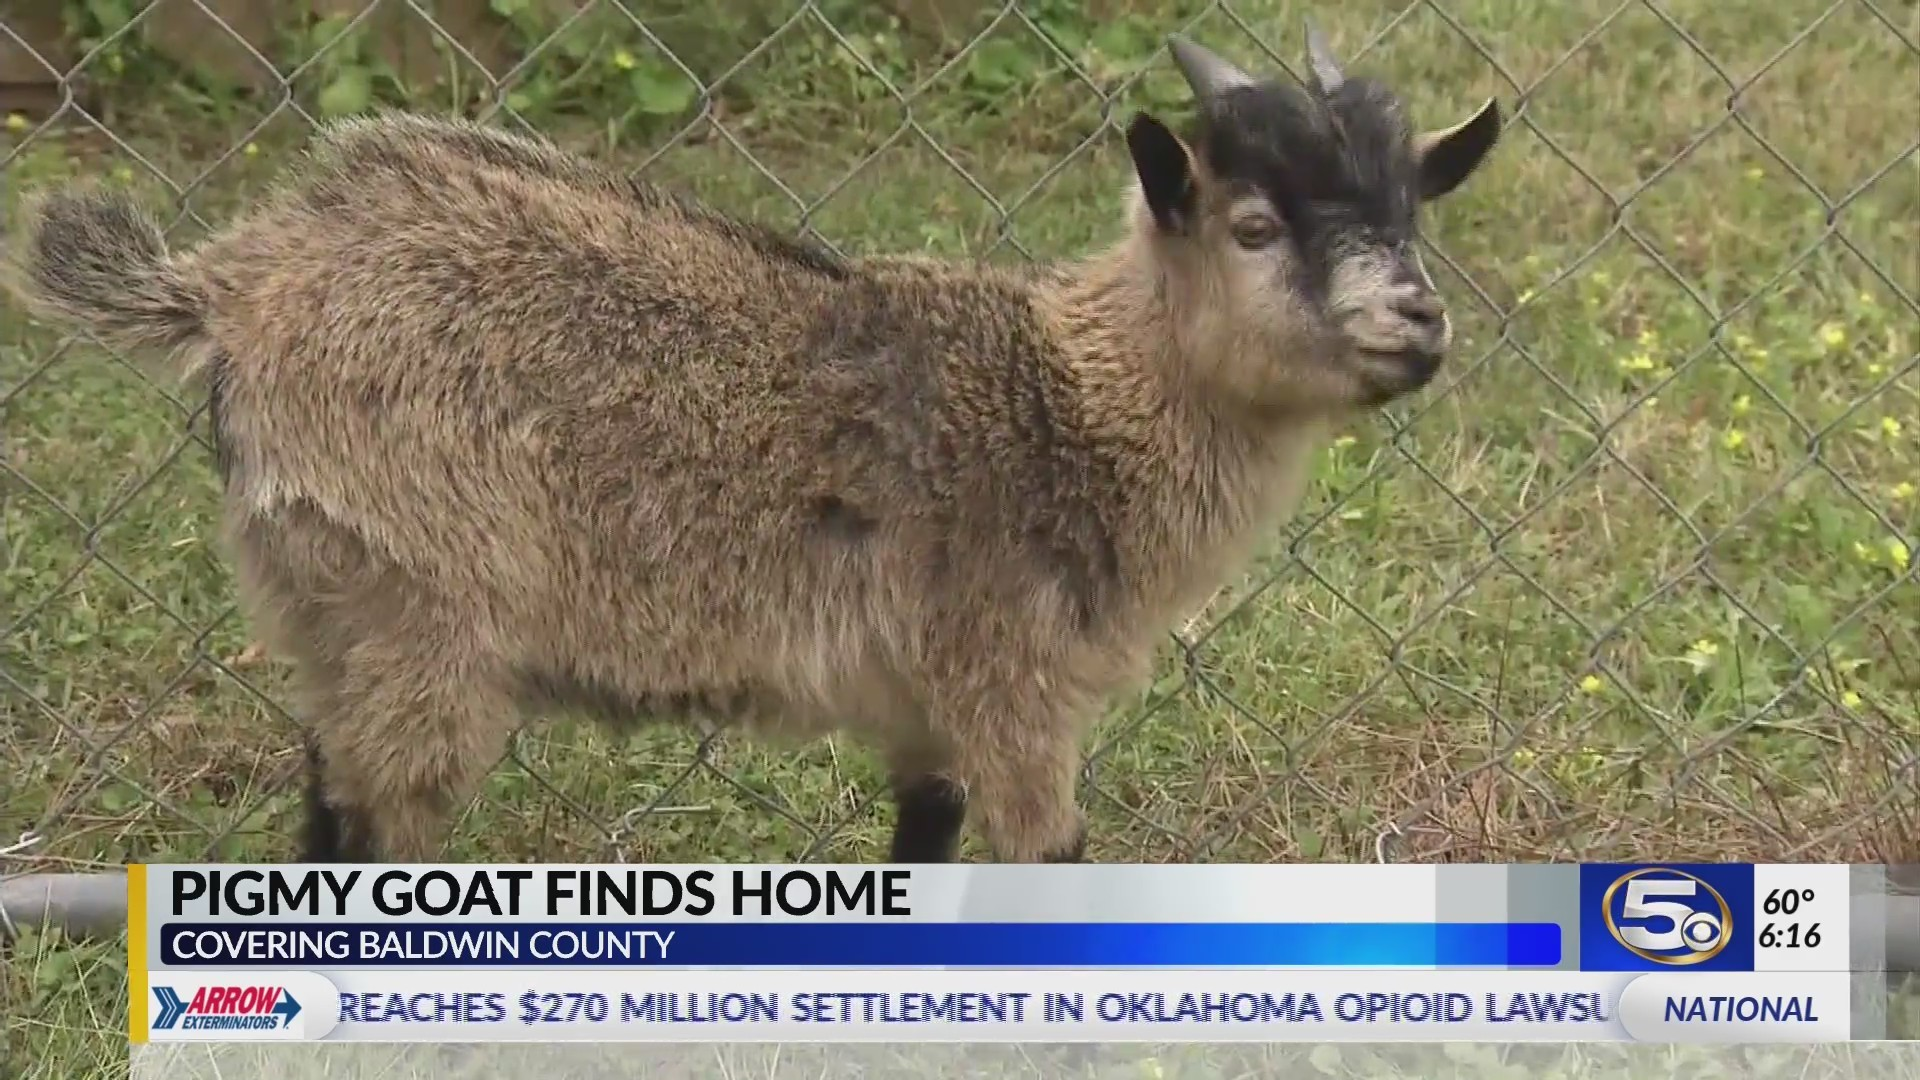 VIDEO: Happy ending for wandering pygmy goat